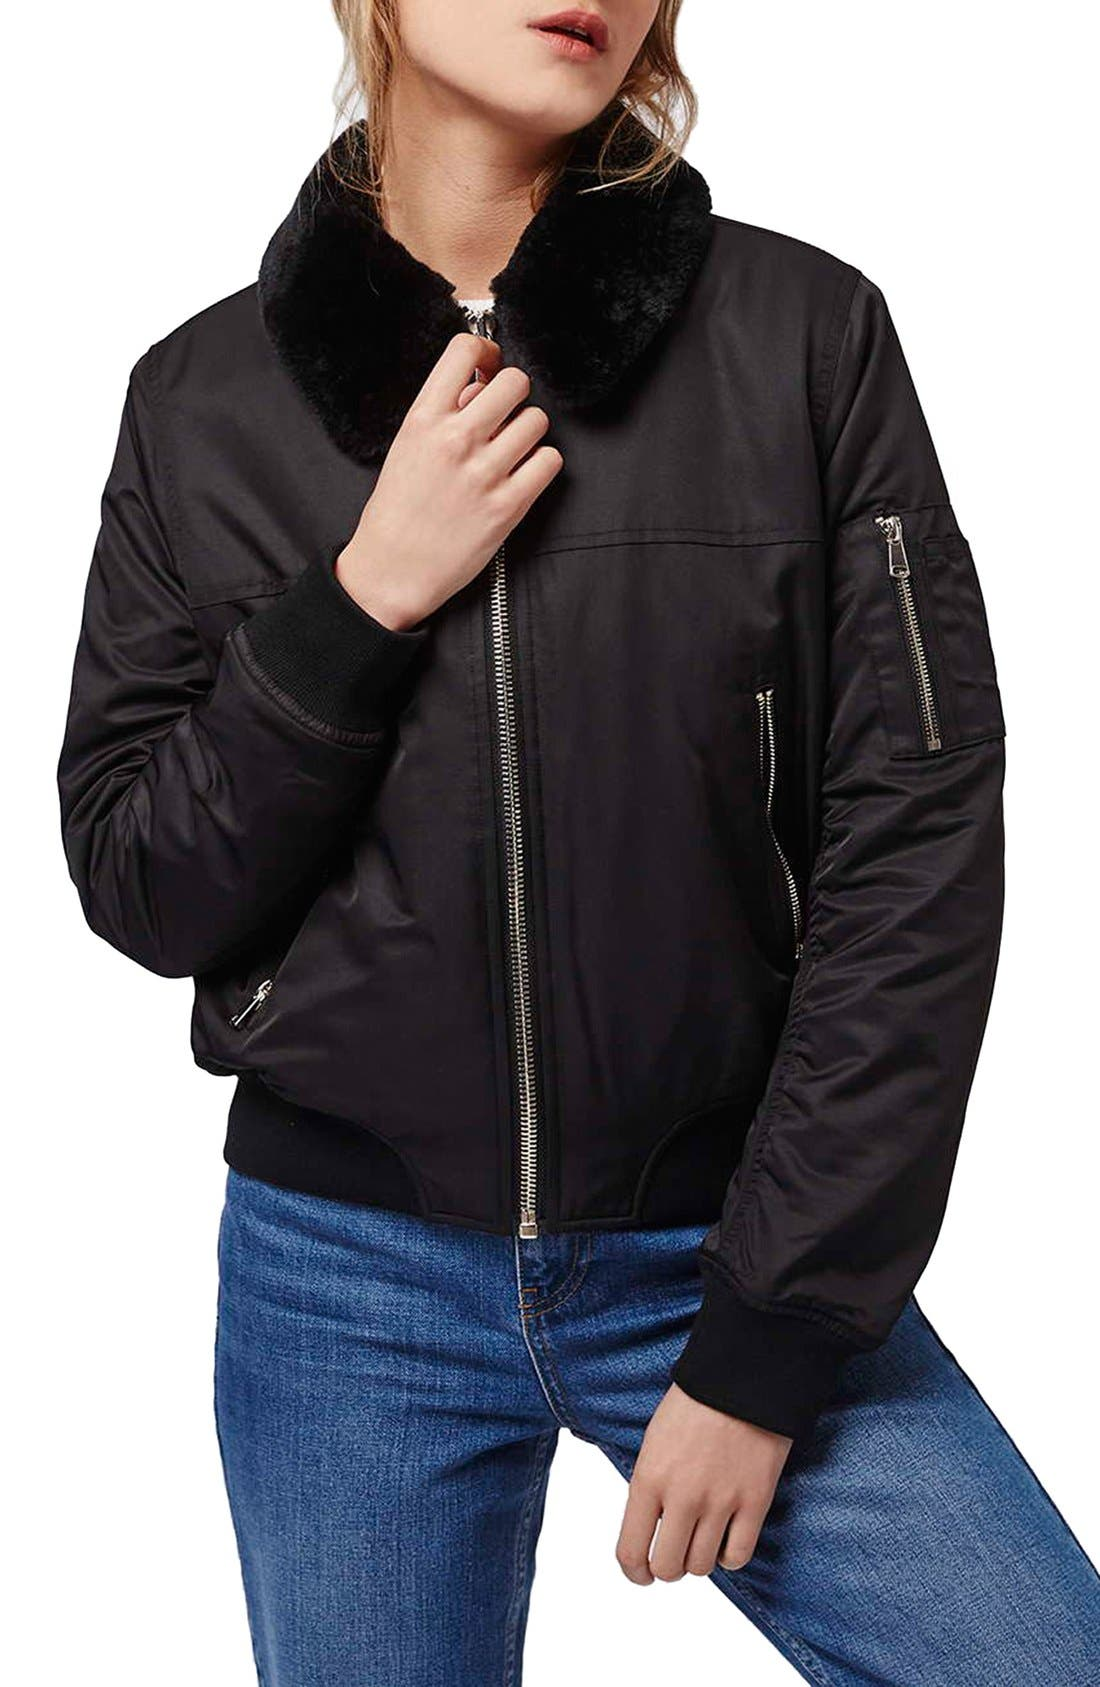 Main Image - Topshop 'MA1' Bomber Jacket with Faux Fur Collar (Petite)